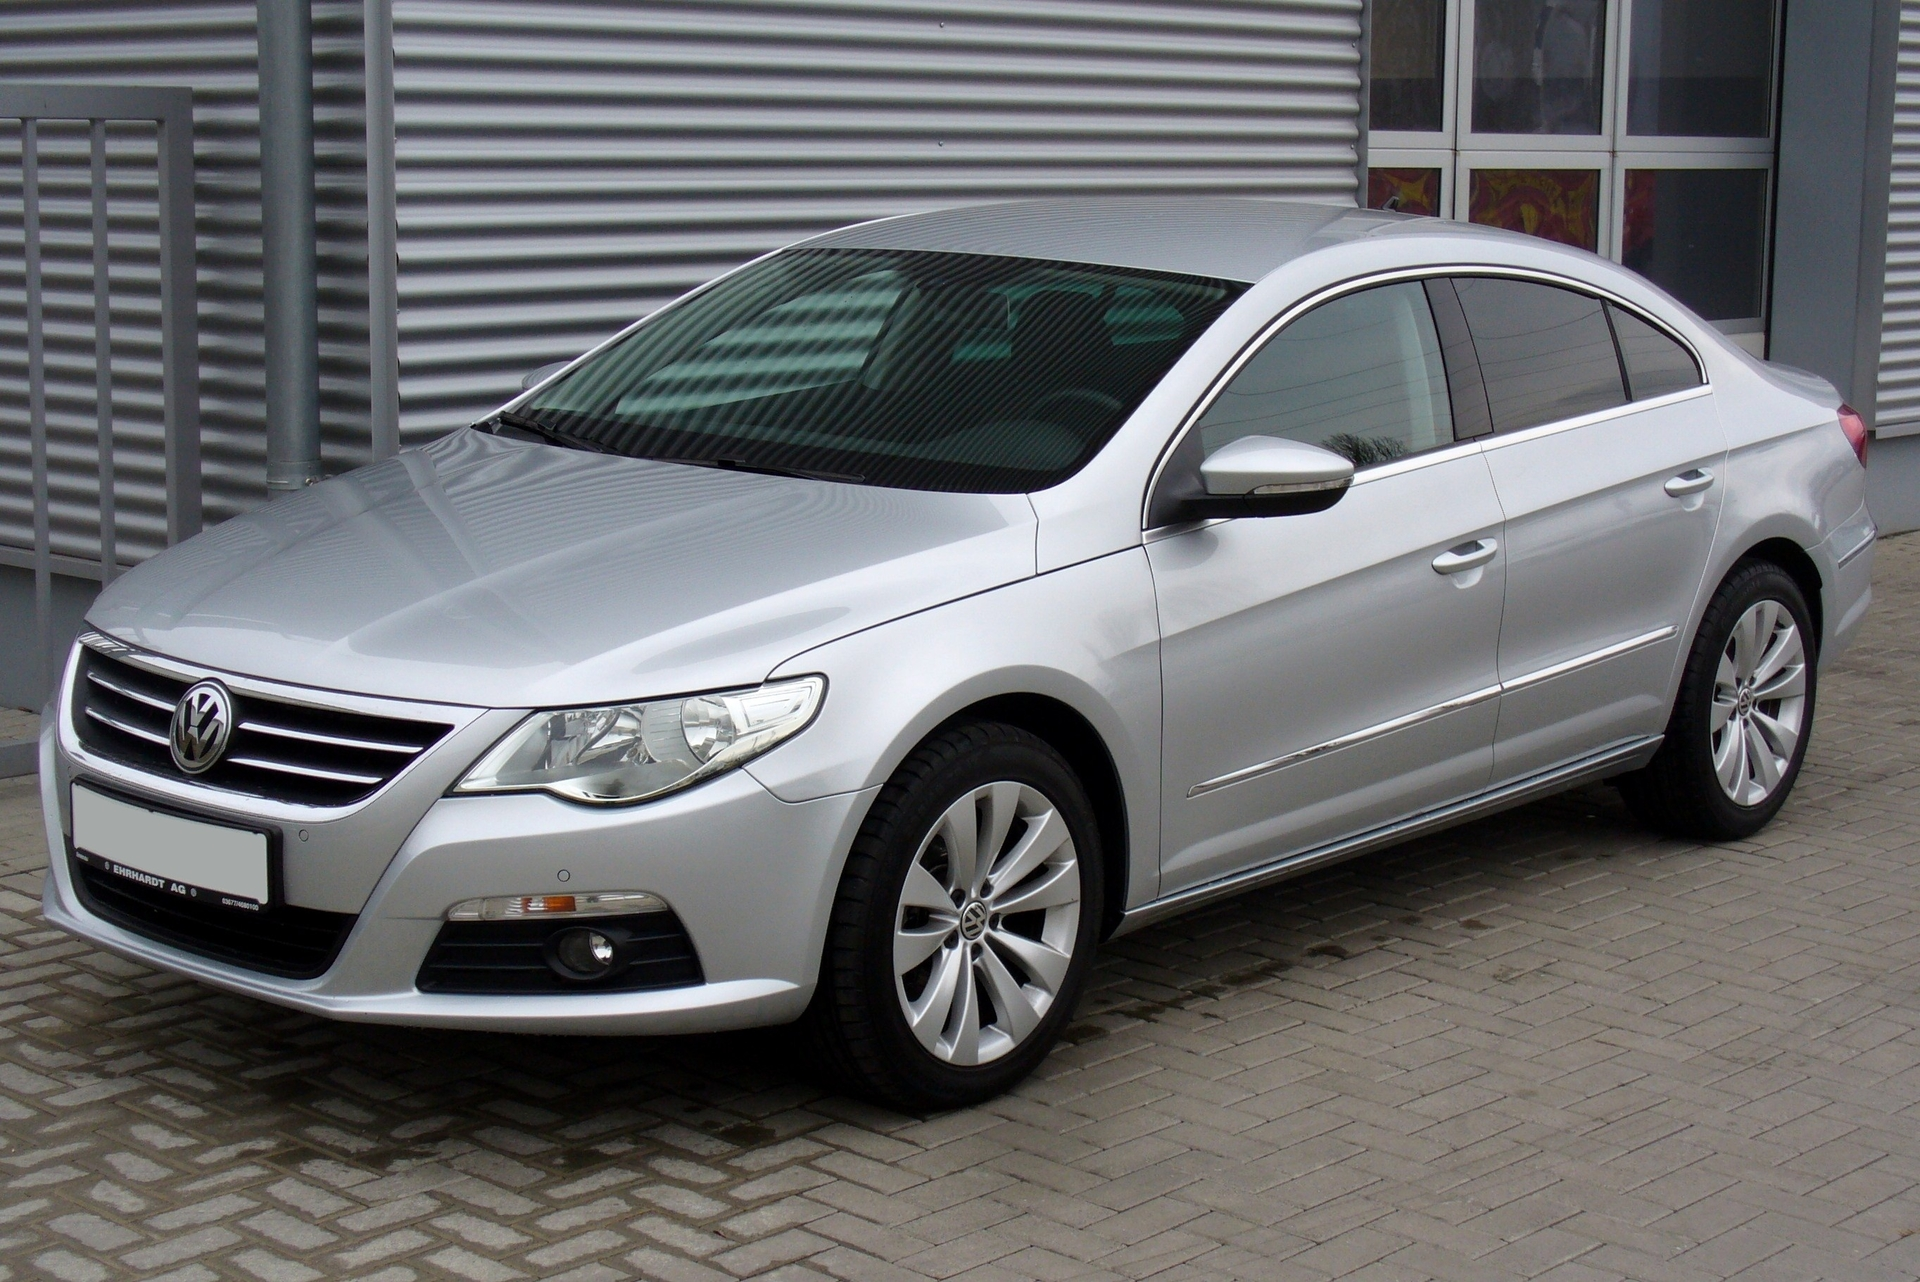 volkswagen used car passat